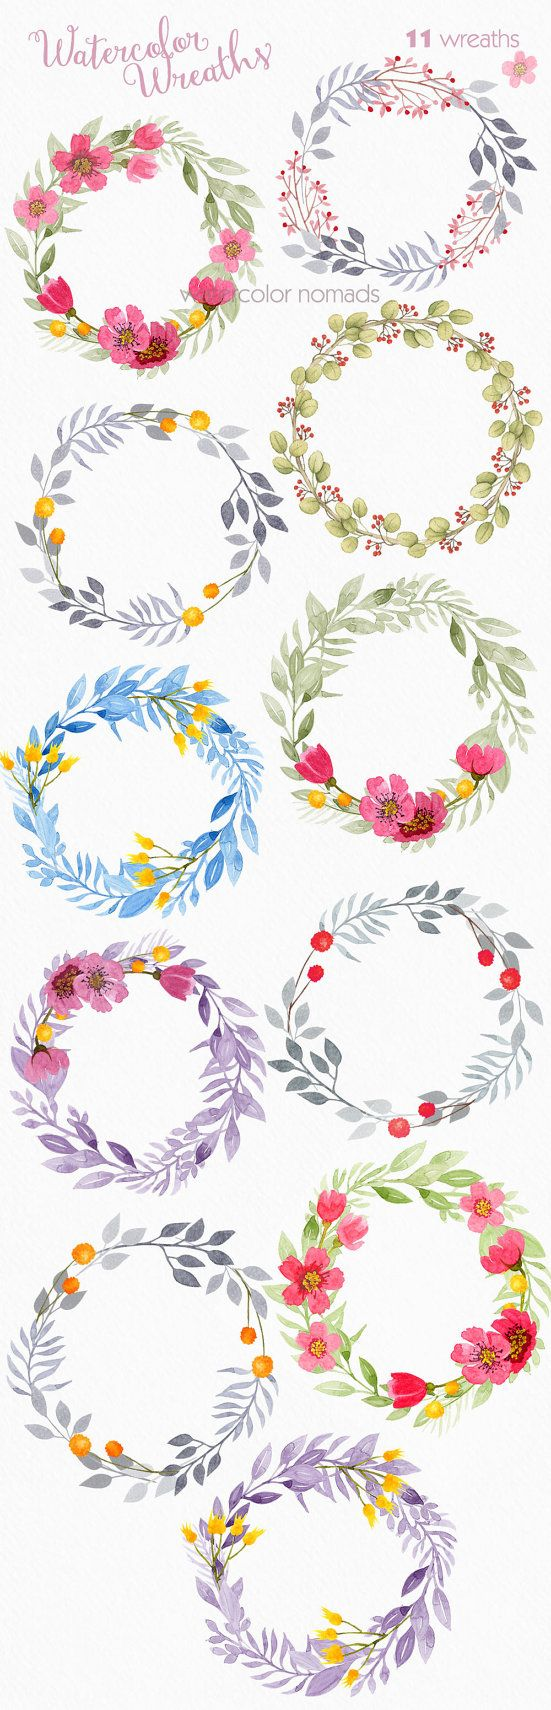 medium resolution of floral wreath clipart watercolor clipart by watercolornomads